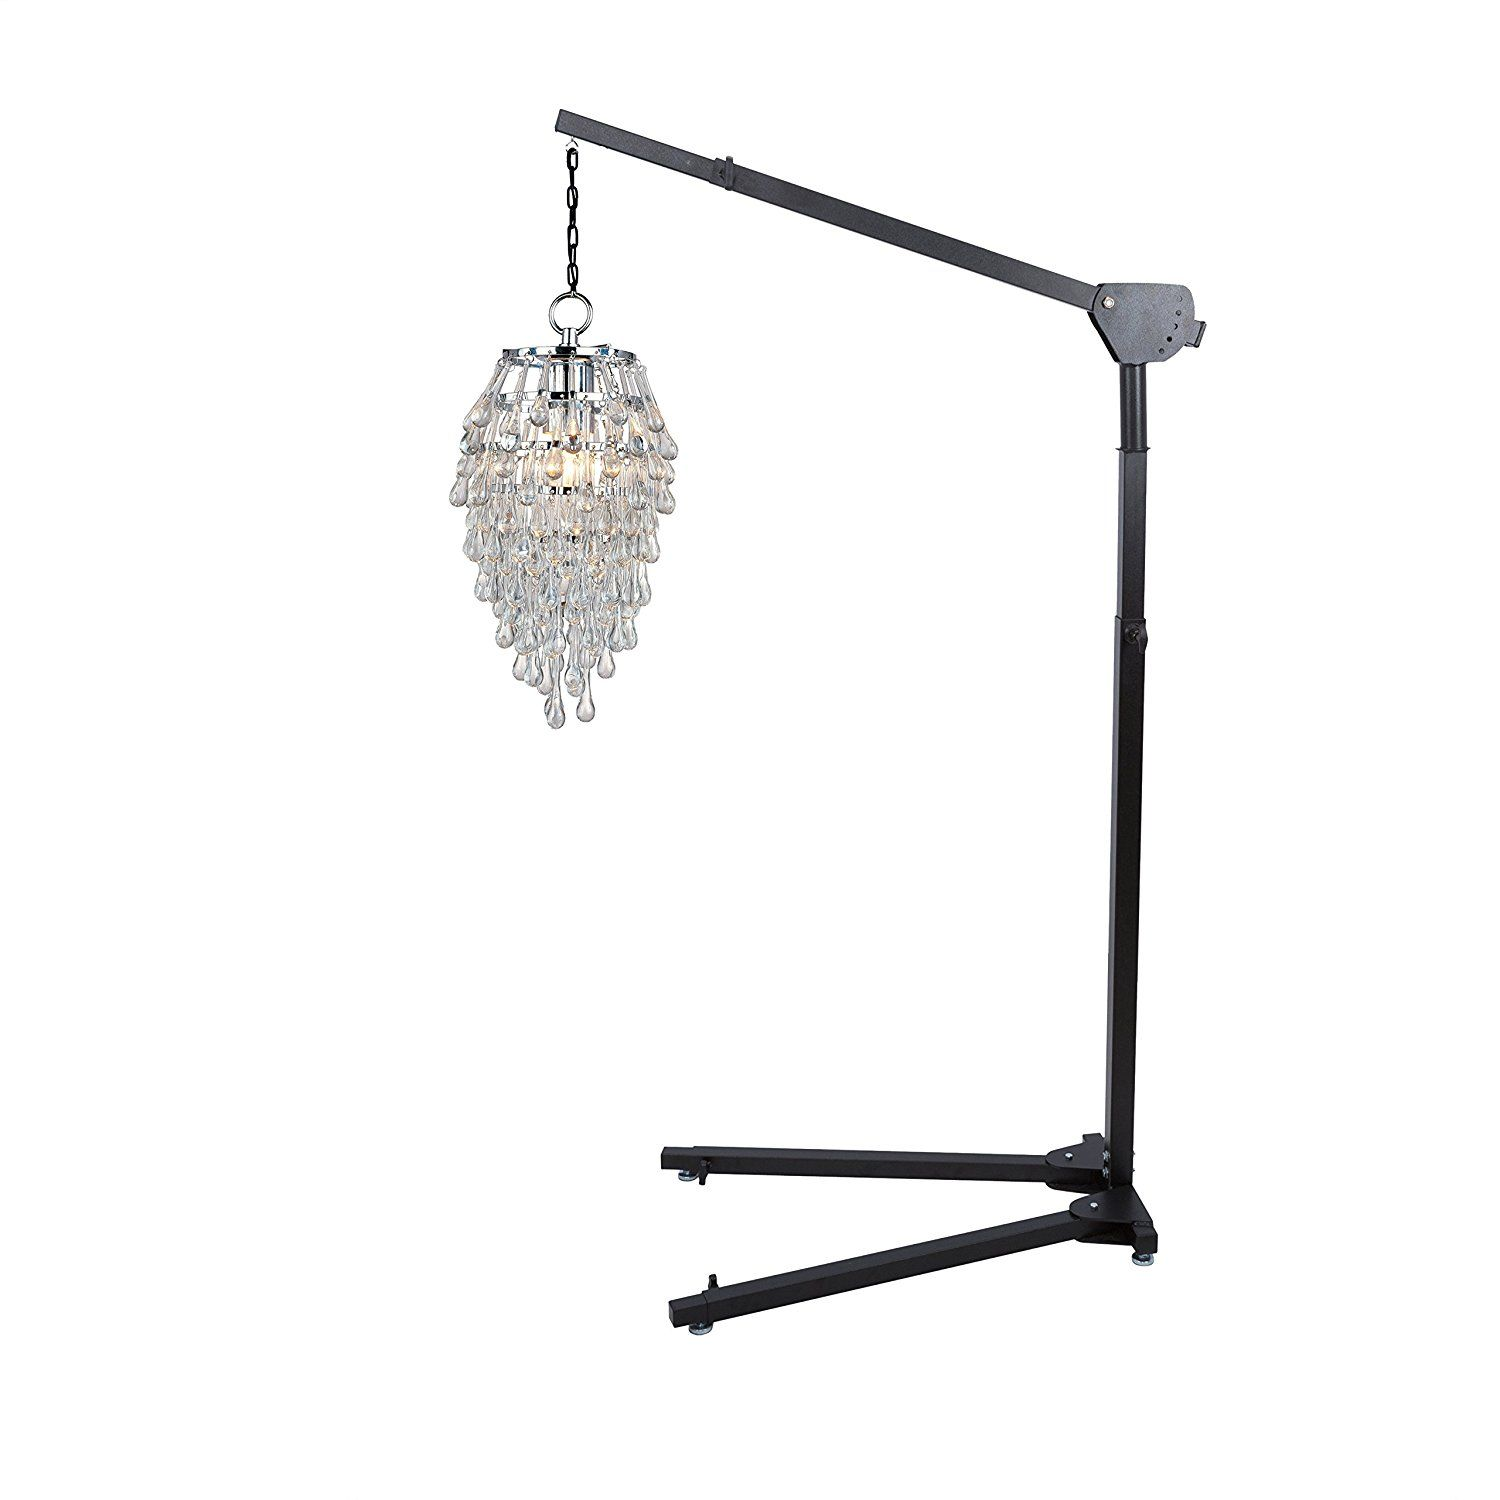 Chandelier Floor Stand 5 39 12 39 Height Hang Chandeliers And Pendant Light Fixtures Easily Pendant Light Fixtures Chandeliers And Pendants Chandelier